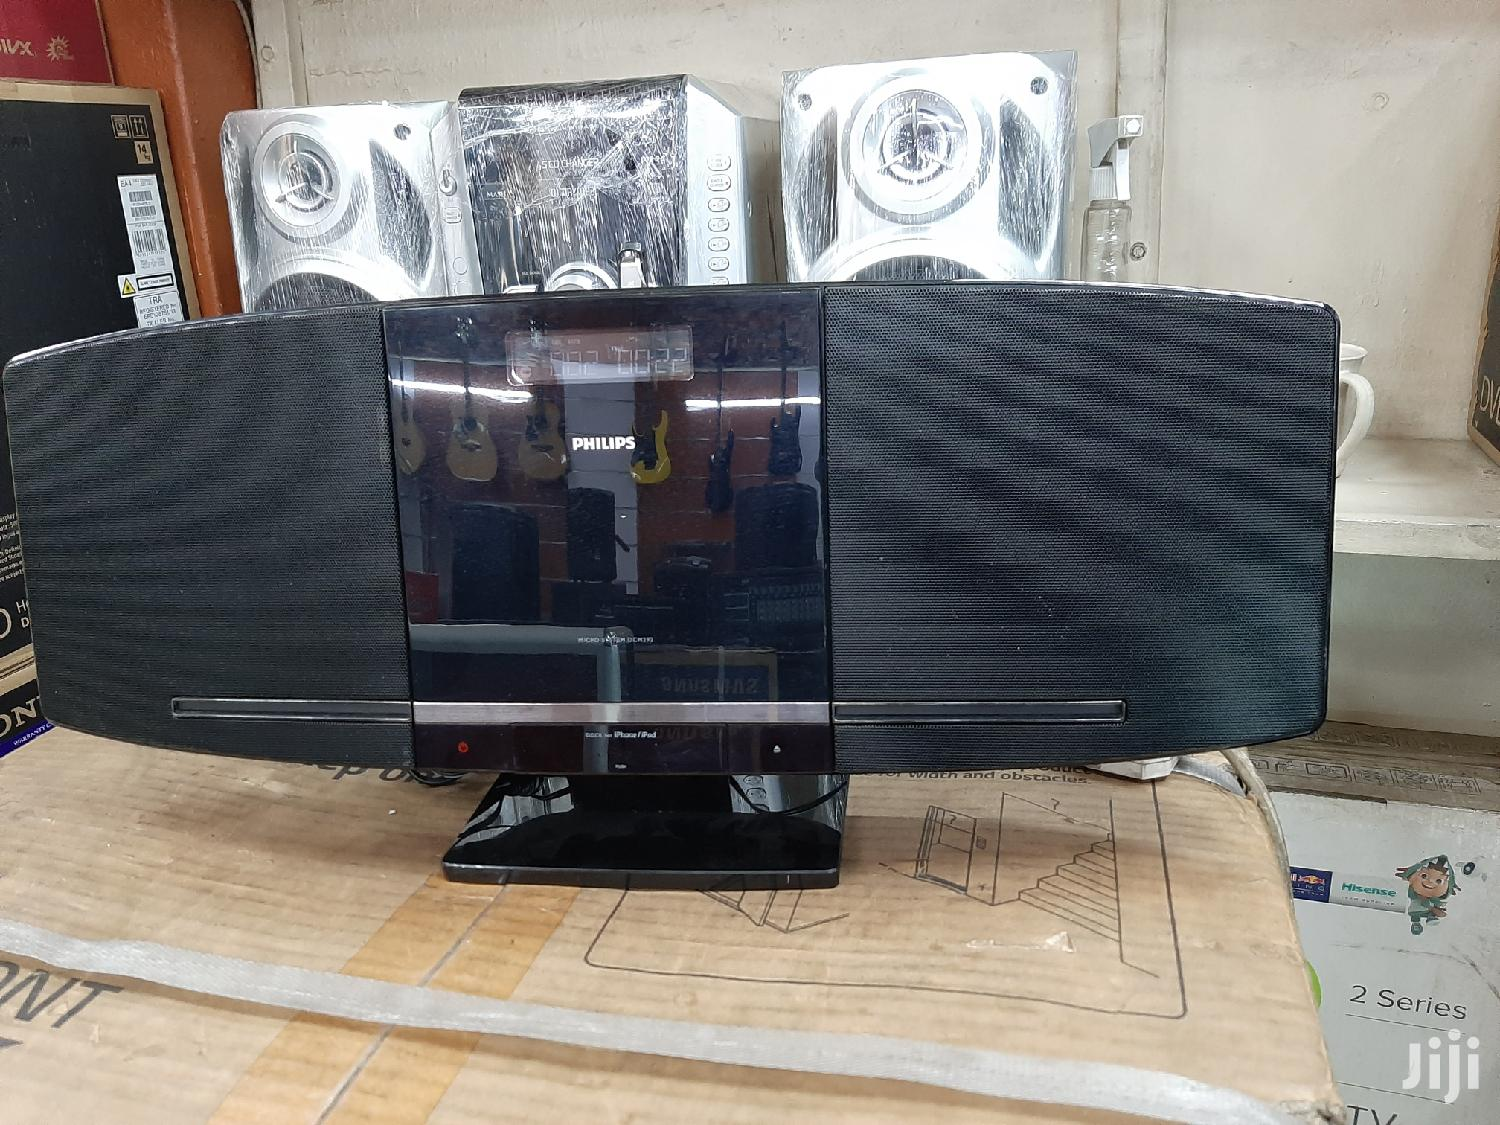 Philips Home Stereo With Usb | Audio & Music Equipment for sale in Nairobi Central, Nairobi, Kenya